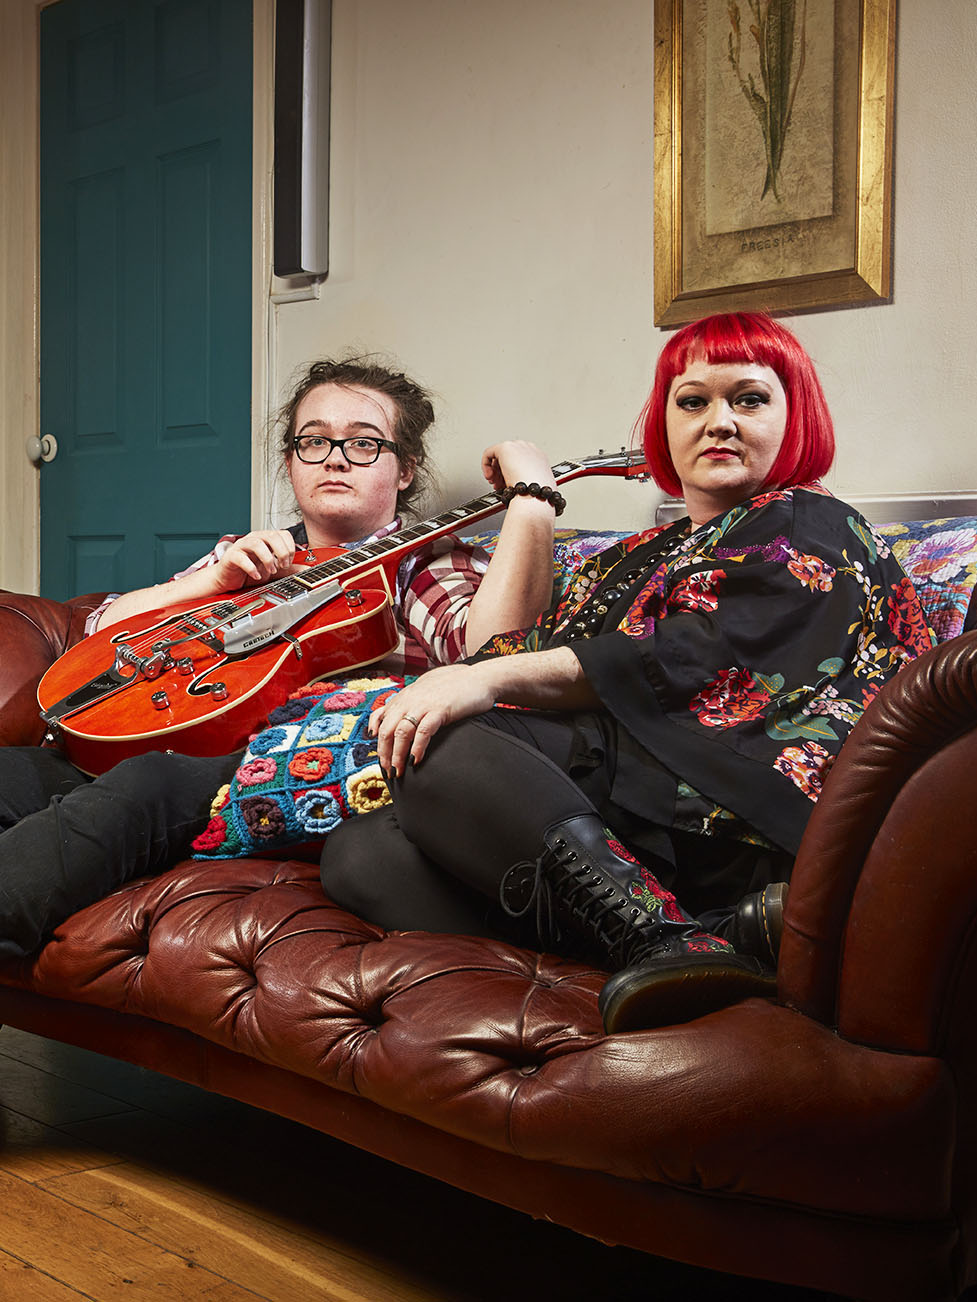 Find out everything about edgy Gogglebox family The McCormicks